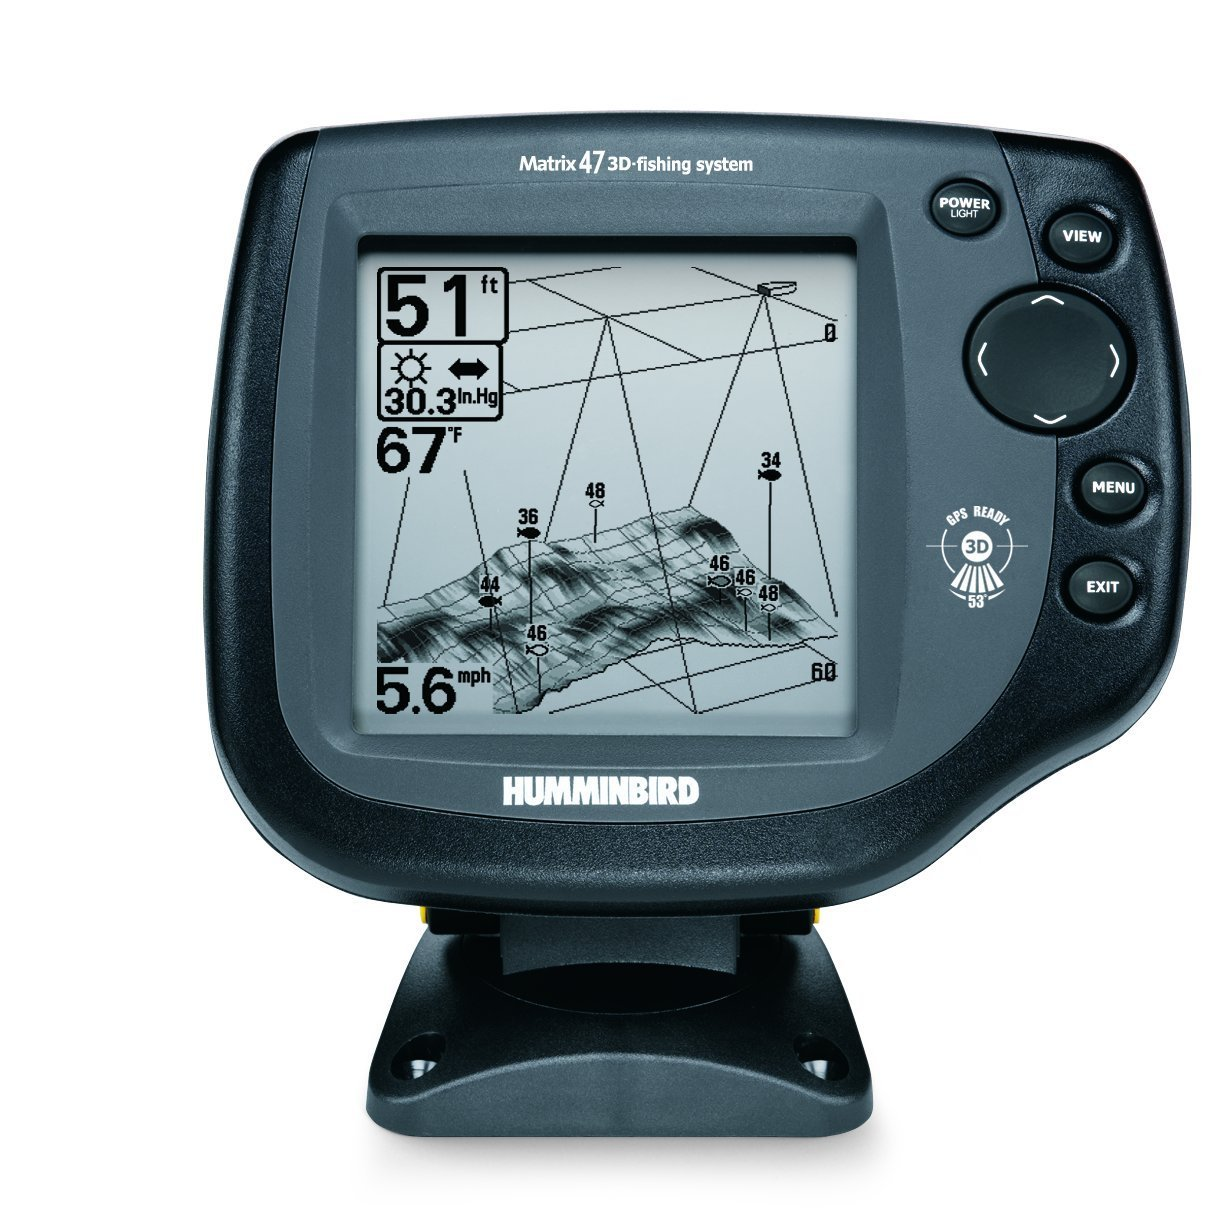 Humminbird matrix 47 3d инструкция